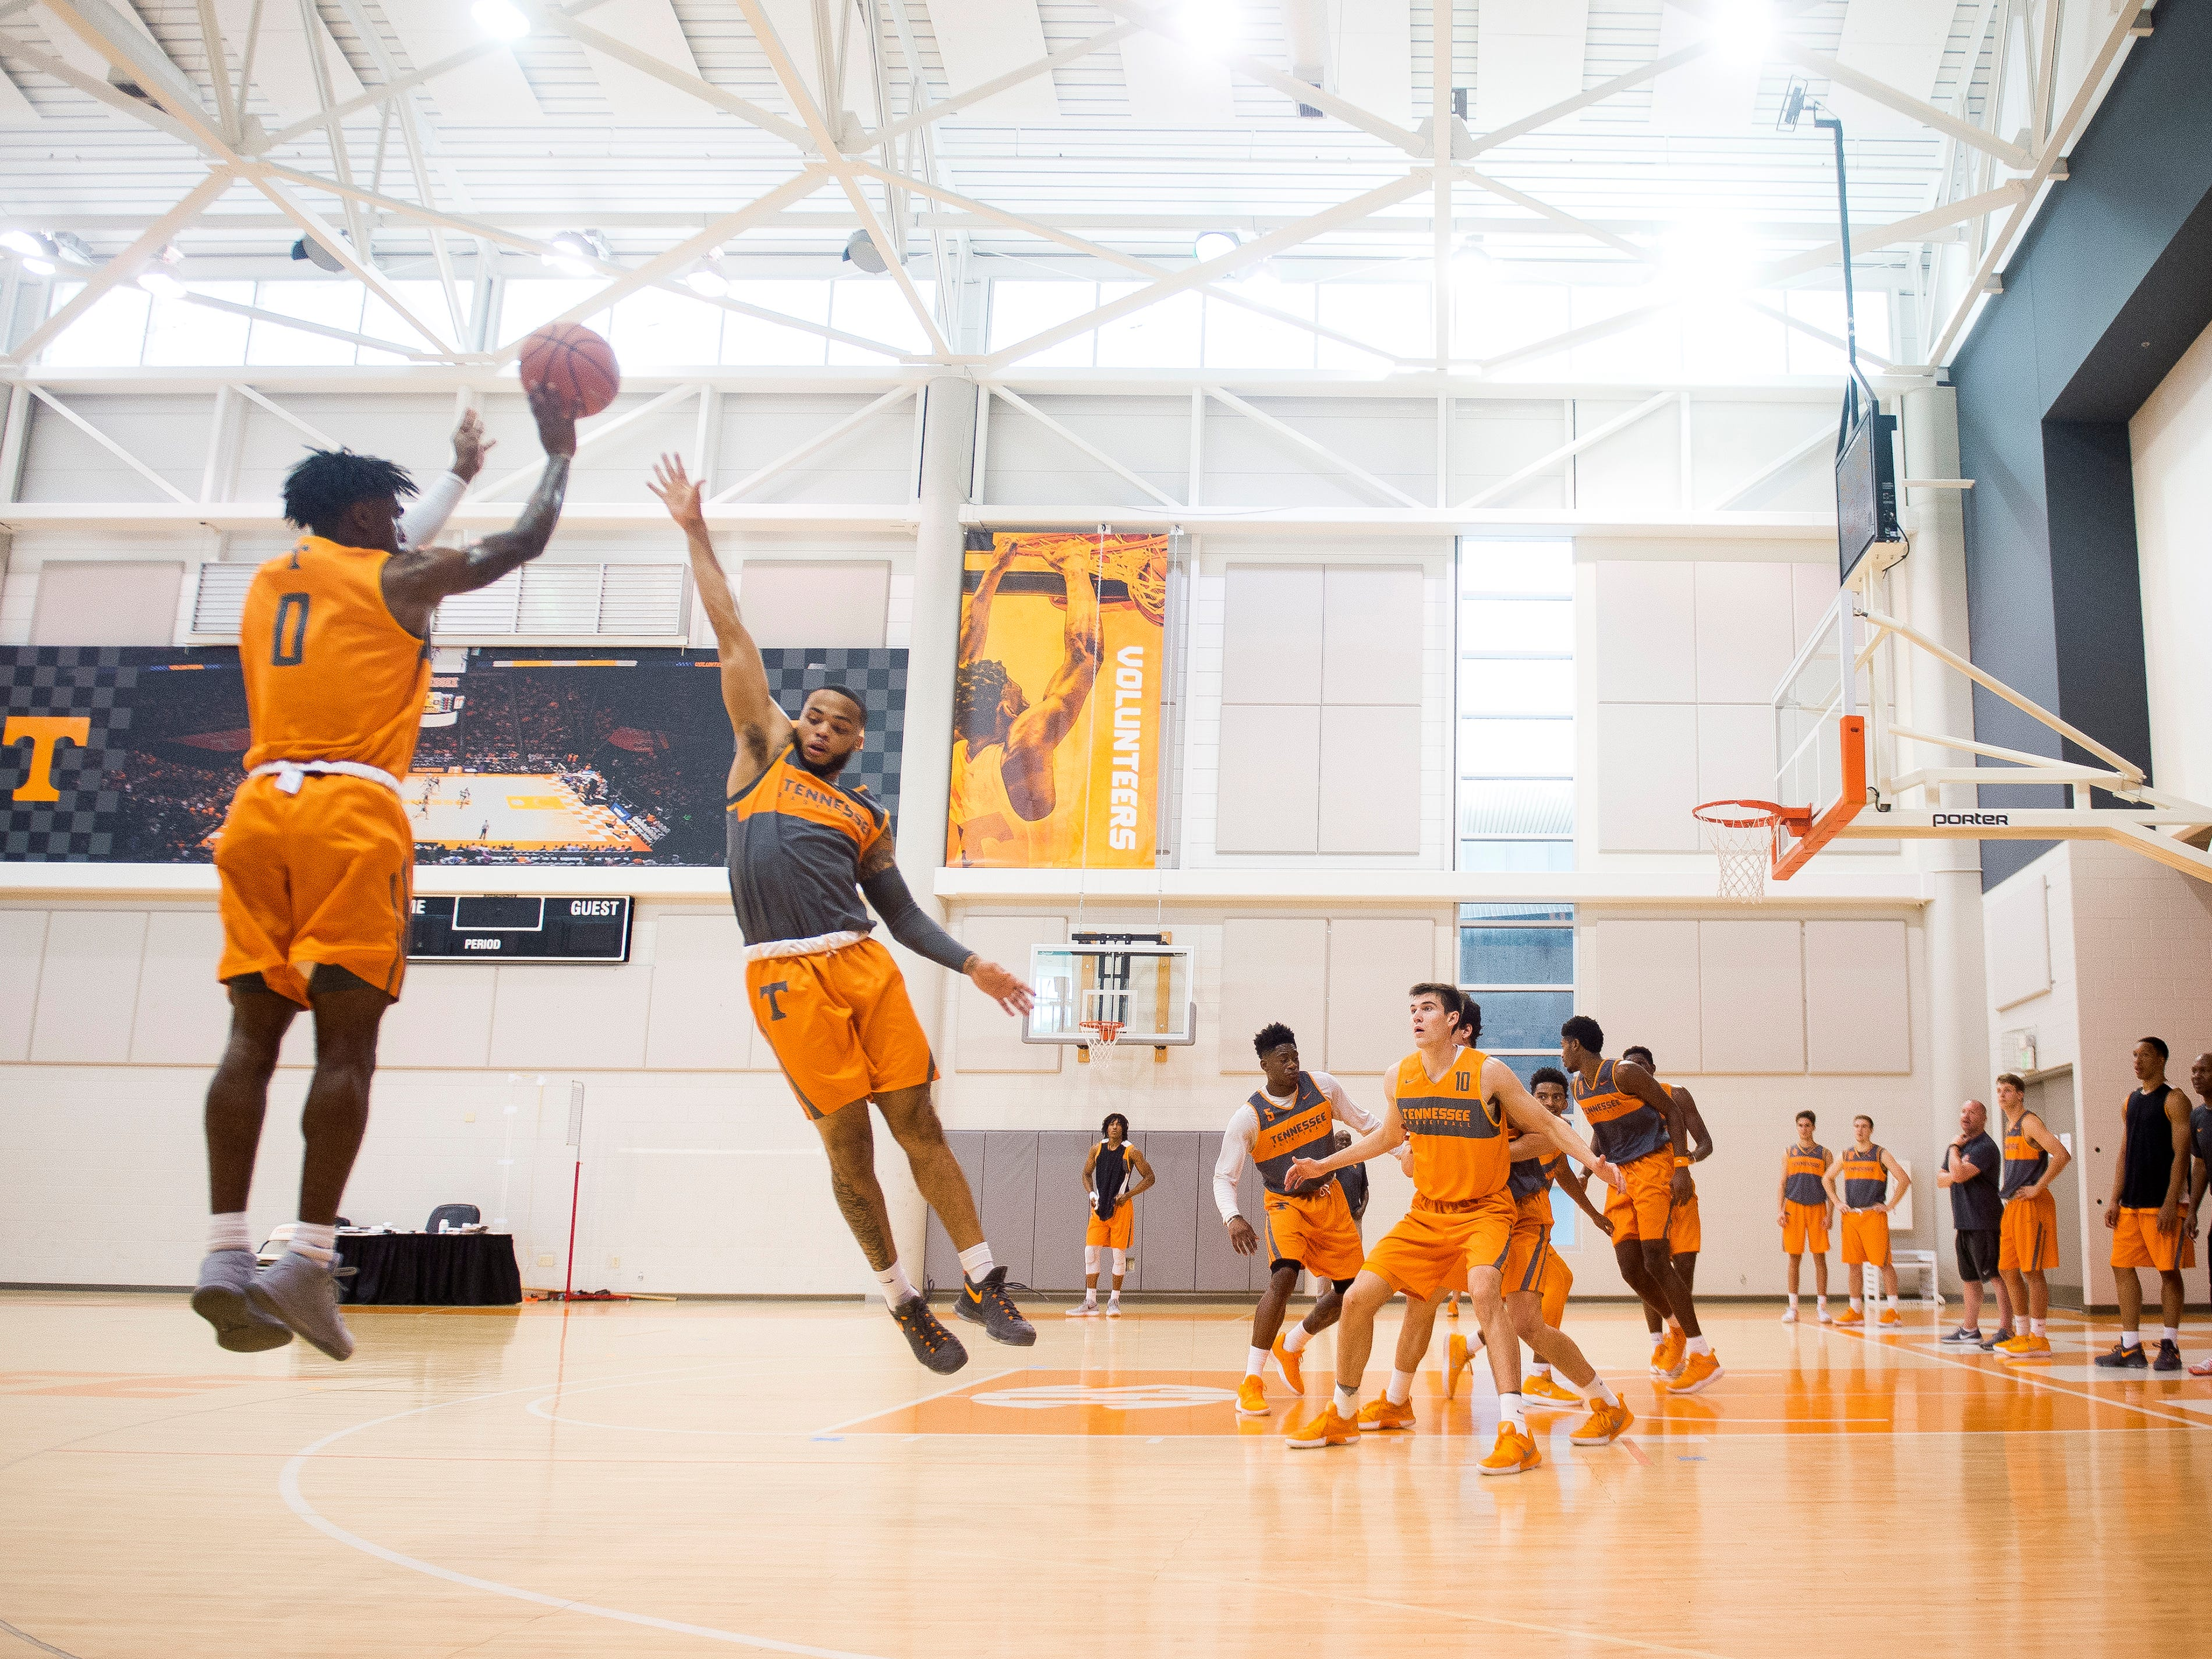 Tennessee guard Jordan Bone (0) shoots past guard Lamonte Turner (1) during basketball practice at Pratt Pavilion on the University of Tennessee's campus on Thursday, October 4, 2018.